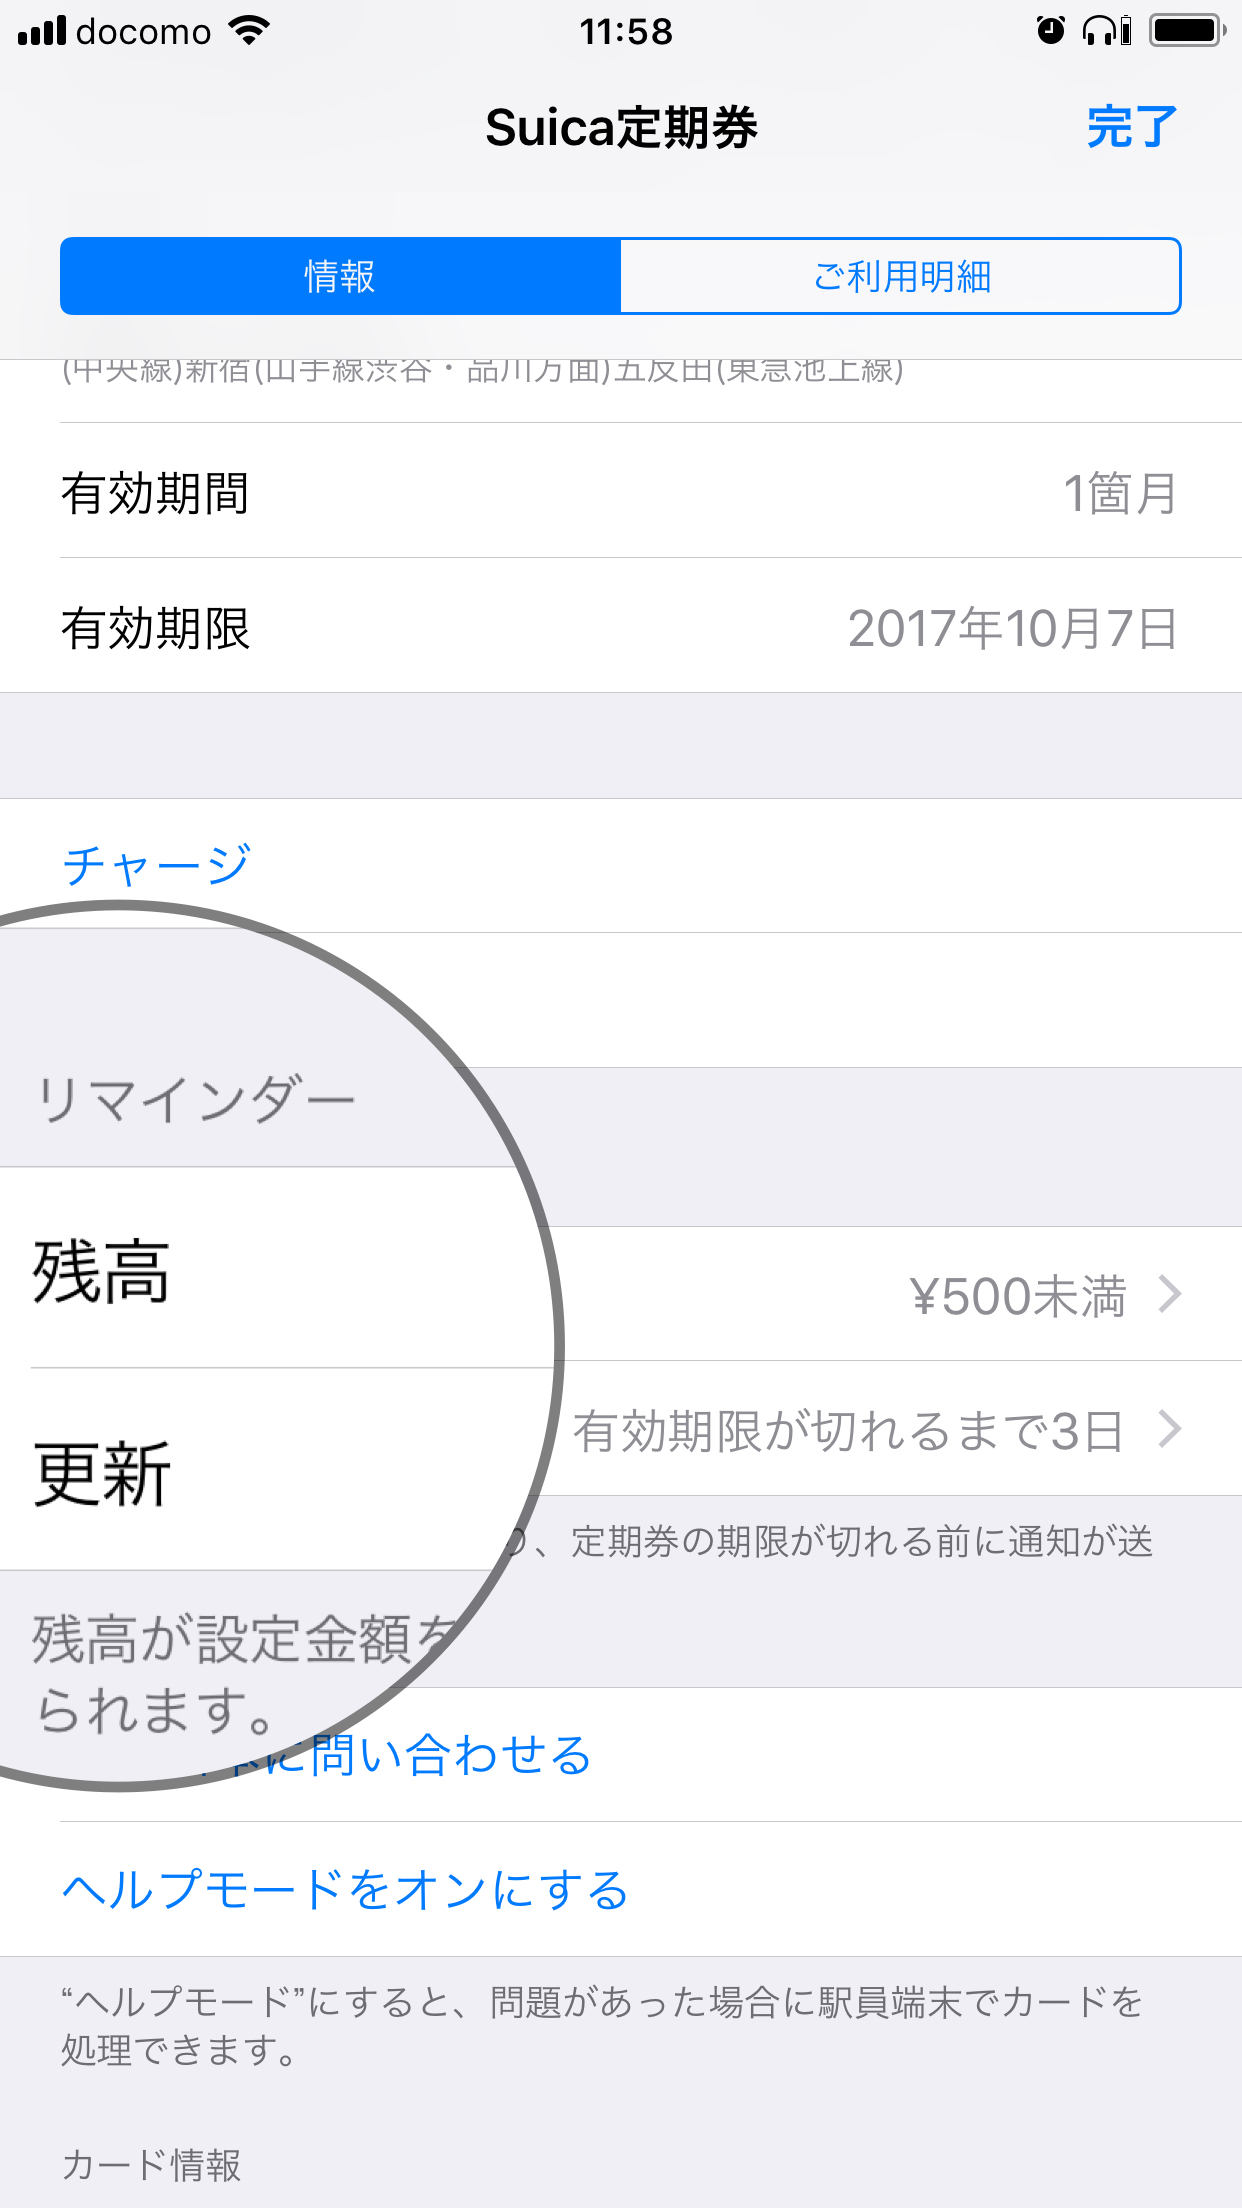 Upgrading to a new iPhone? Don't Forget the Suica Two-Step